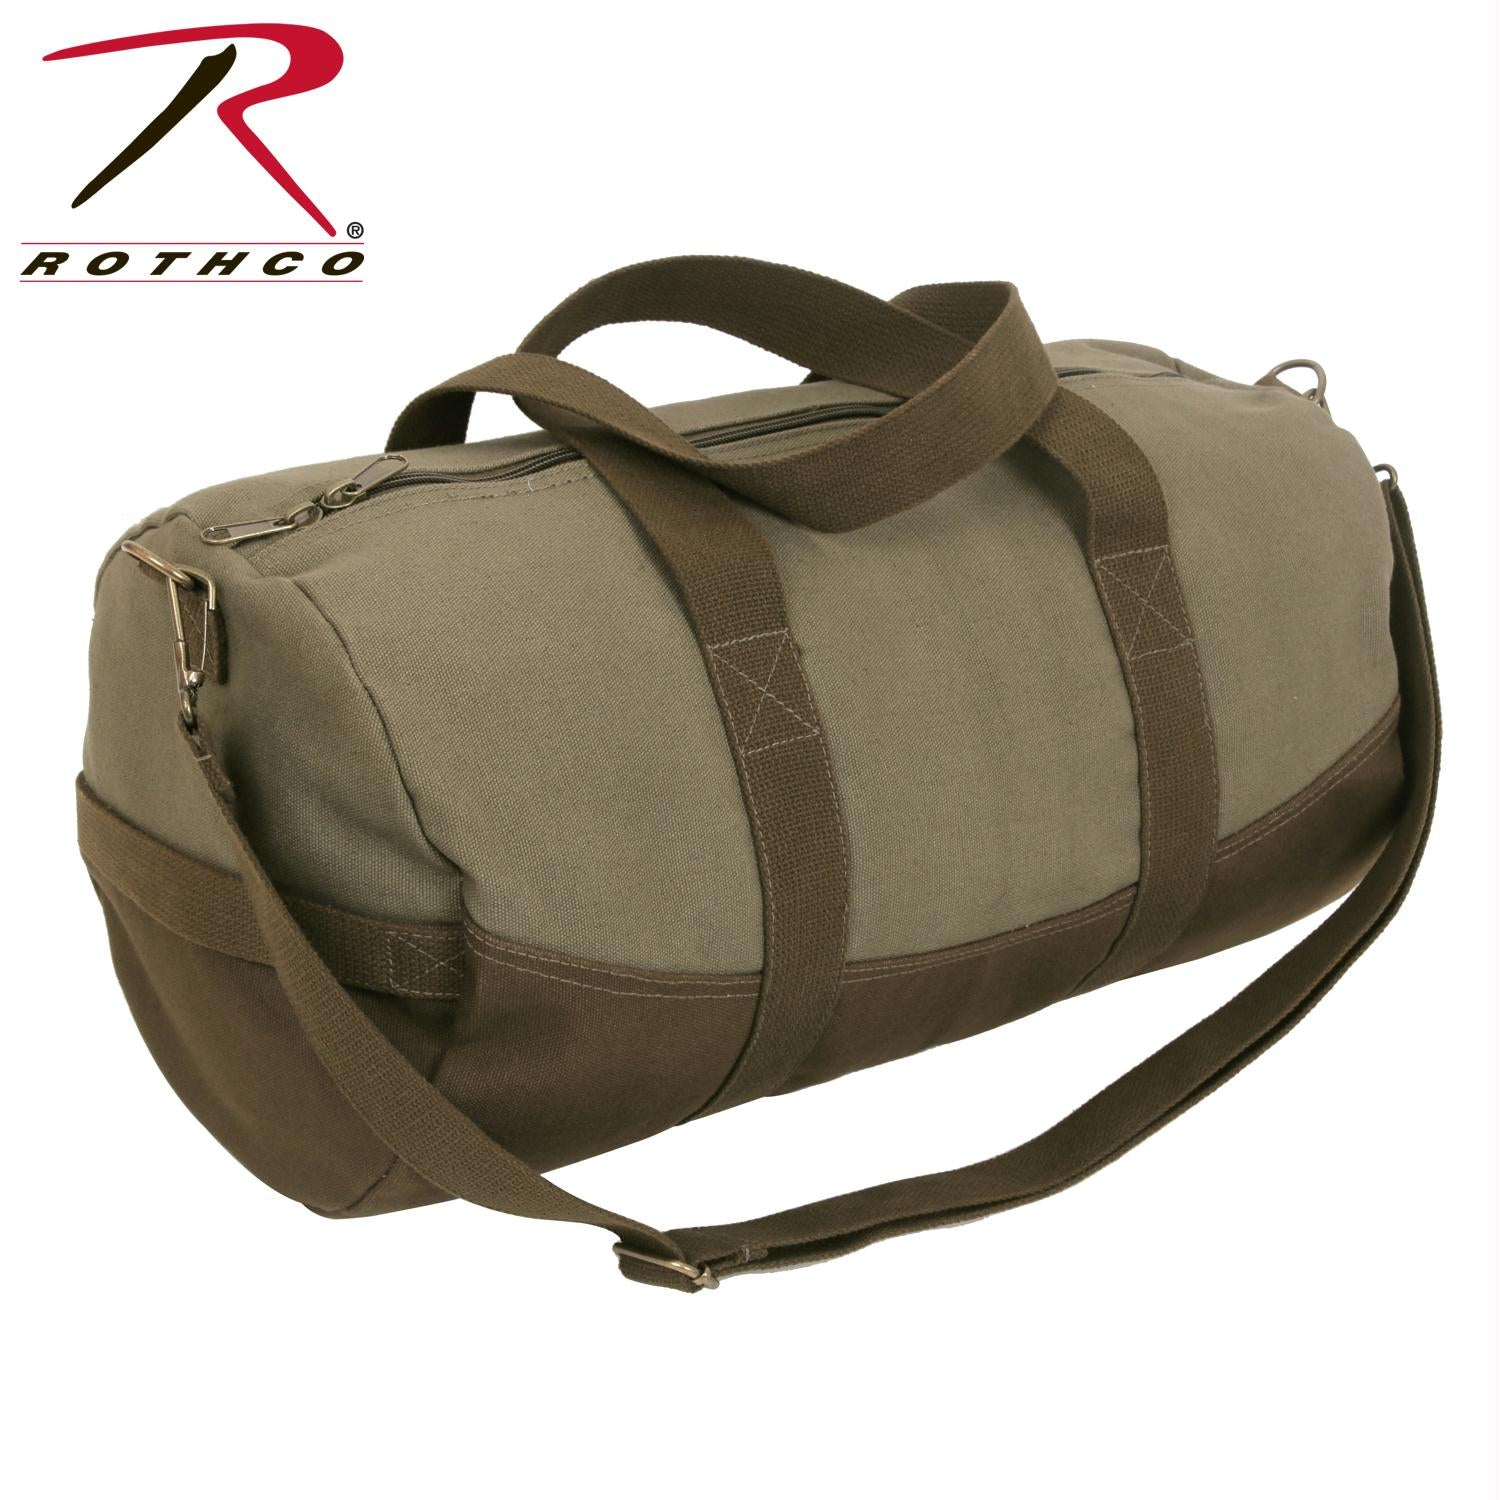 Rothco Two-Tone Canvas Duffle Bag With Brown Bottom - Olive Drab / Brown